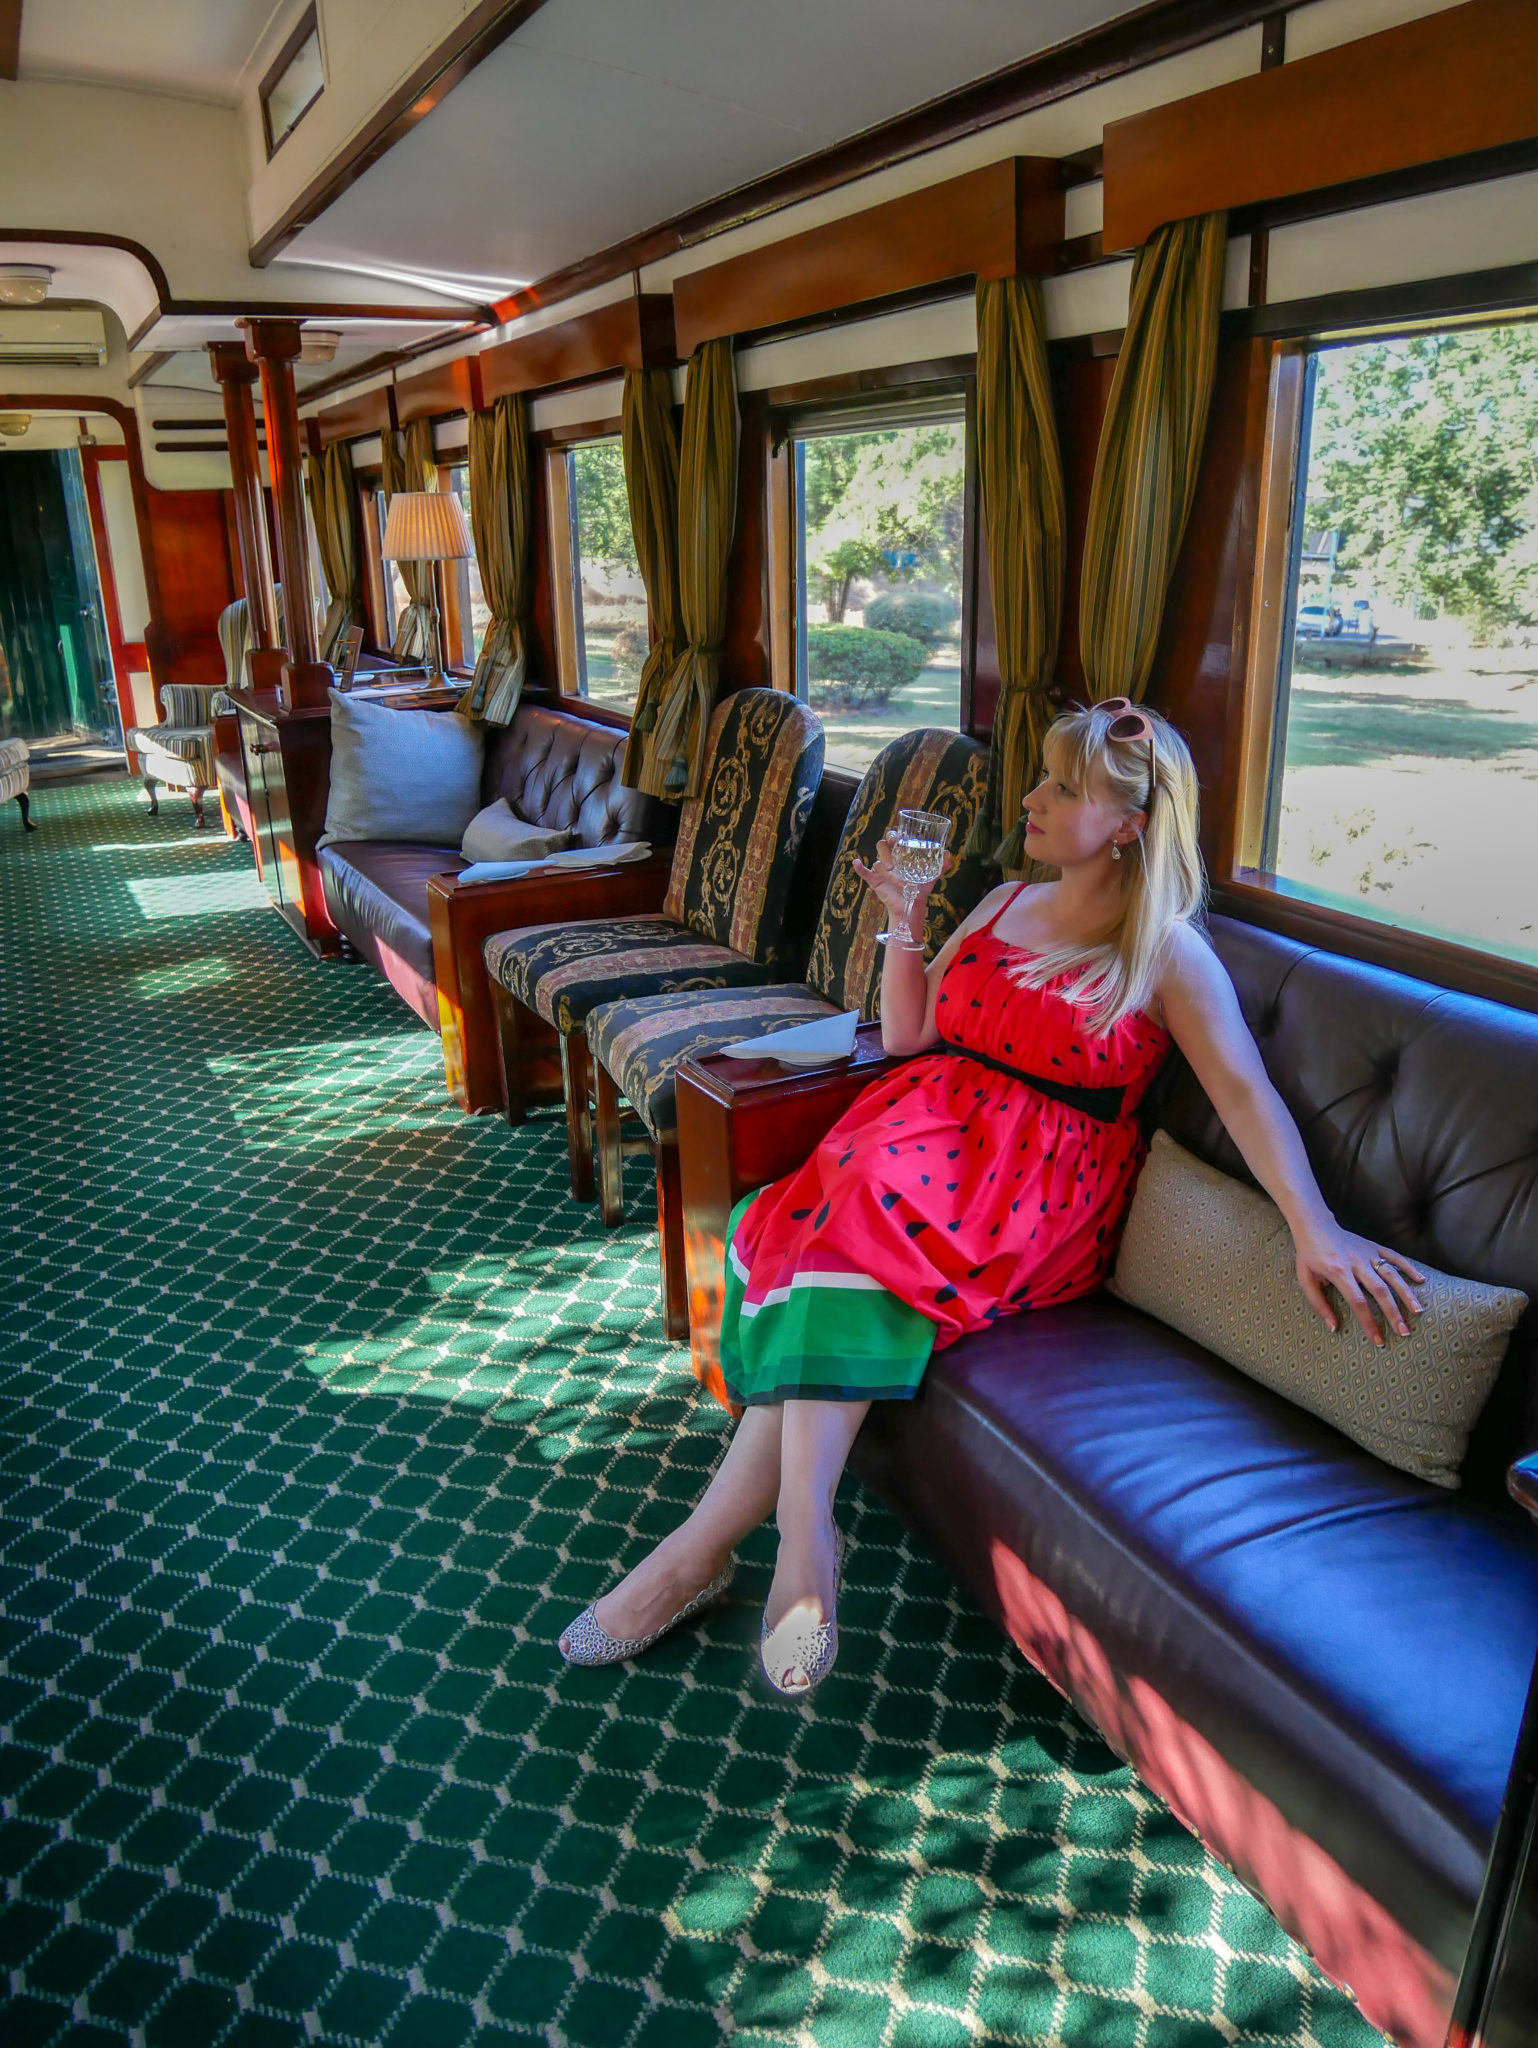 Rosie sits on a leather sofa in the Lounge car of the Royal Livingstone Express train